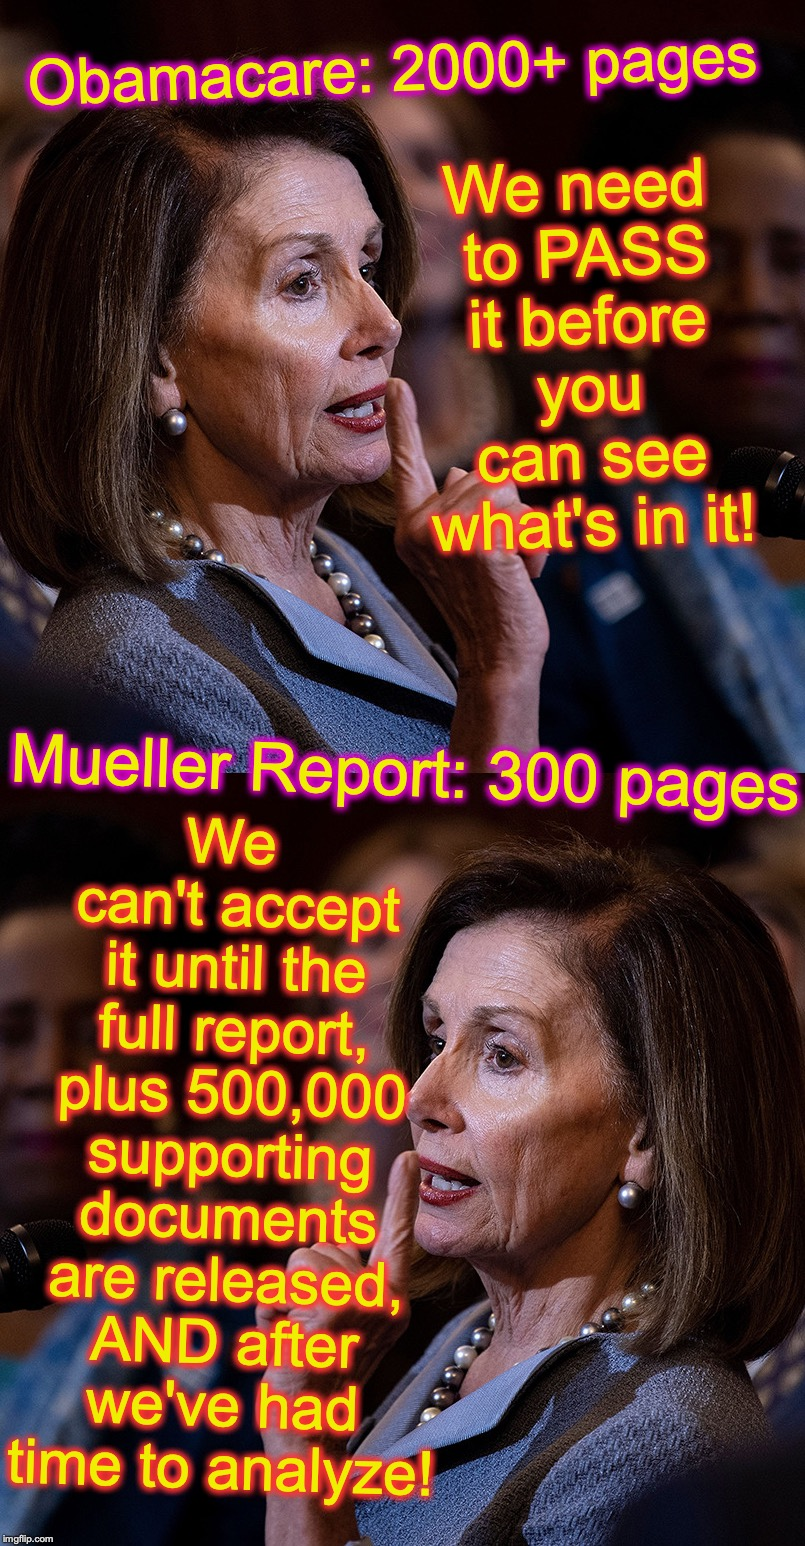 Obamacare: 2000+ pages We can't accept it until the full report, plus 500,000 supporting documents are released, AND after we've had time to | image tagged in nancy pelosi,robert mueller | made w/ Imgflip meme maker